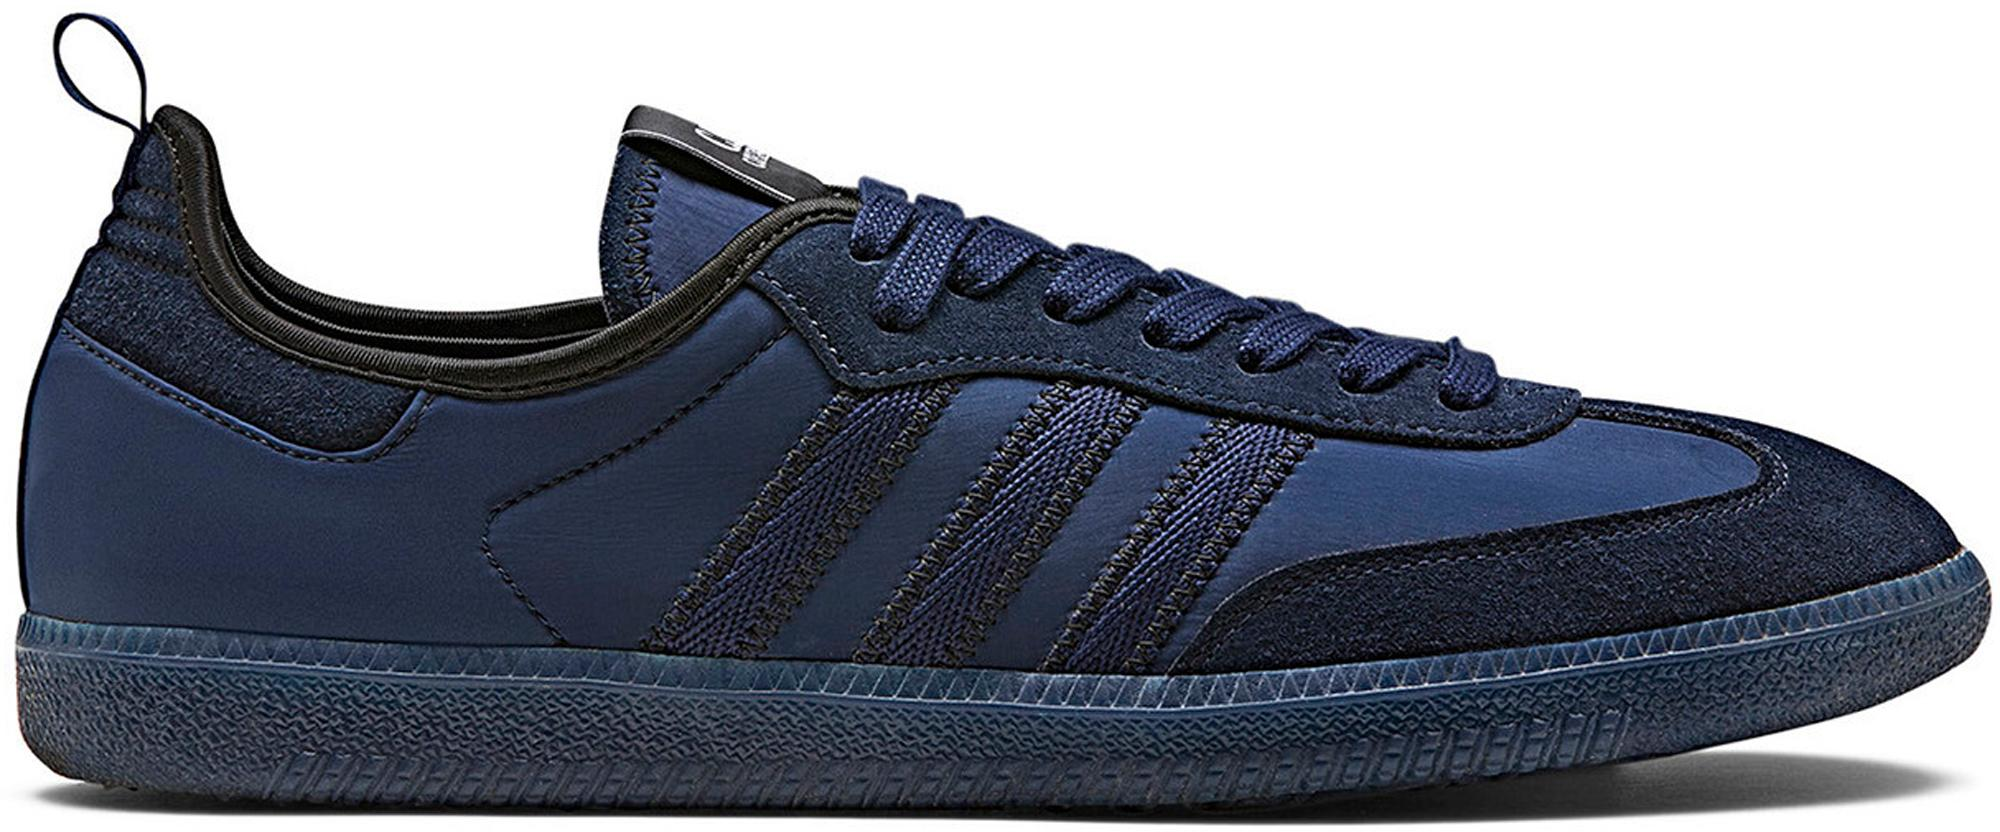 adidas cp trainers for men